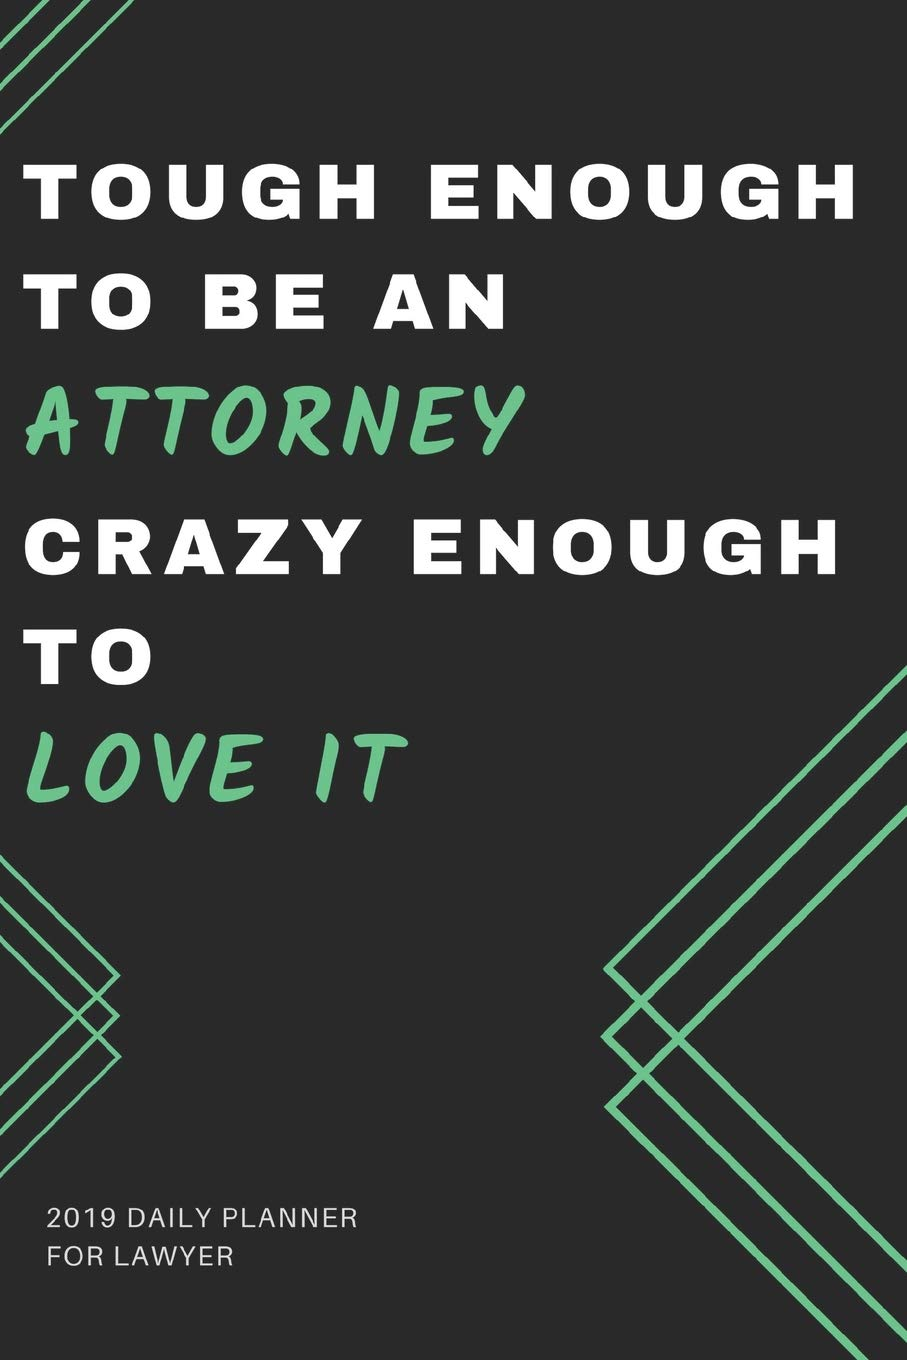 2019 Daily Planner for Lawyer Tough Enough To Be An Attorney ...